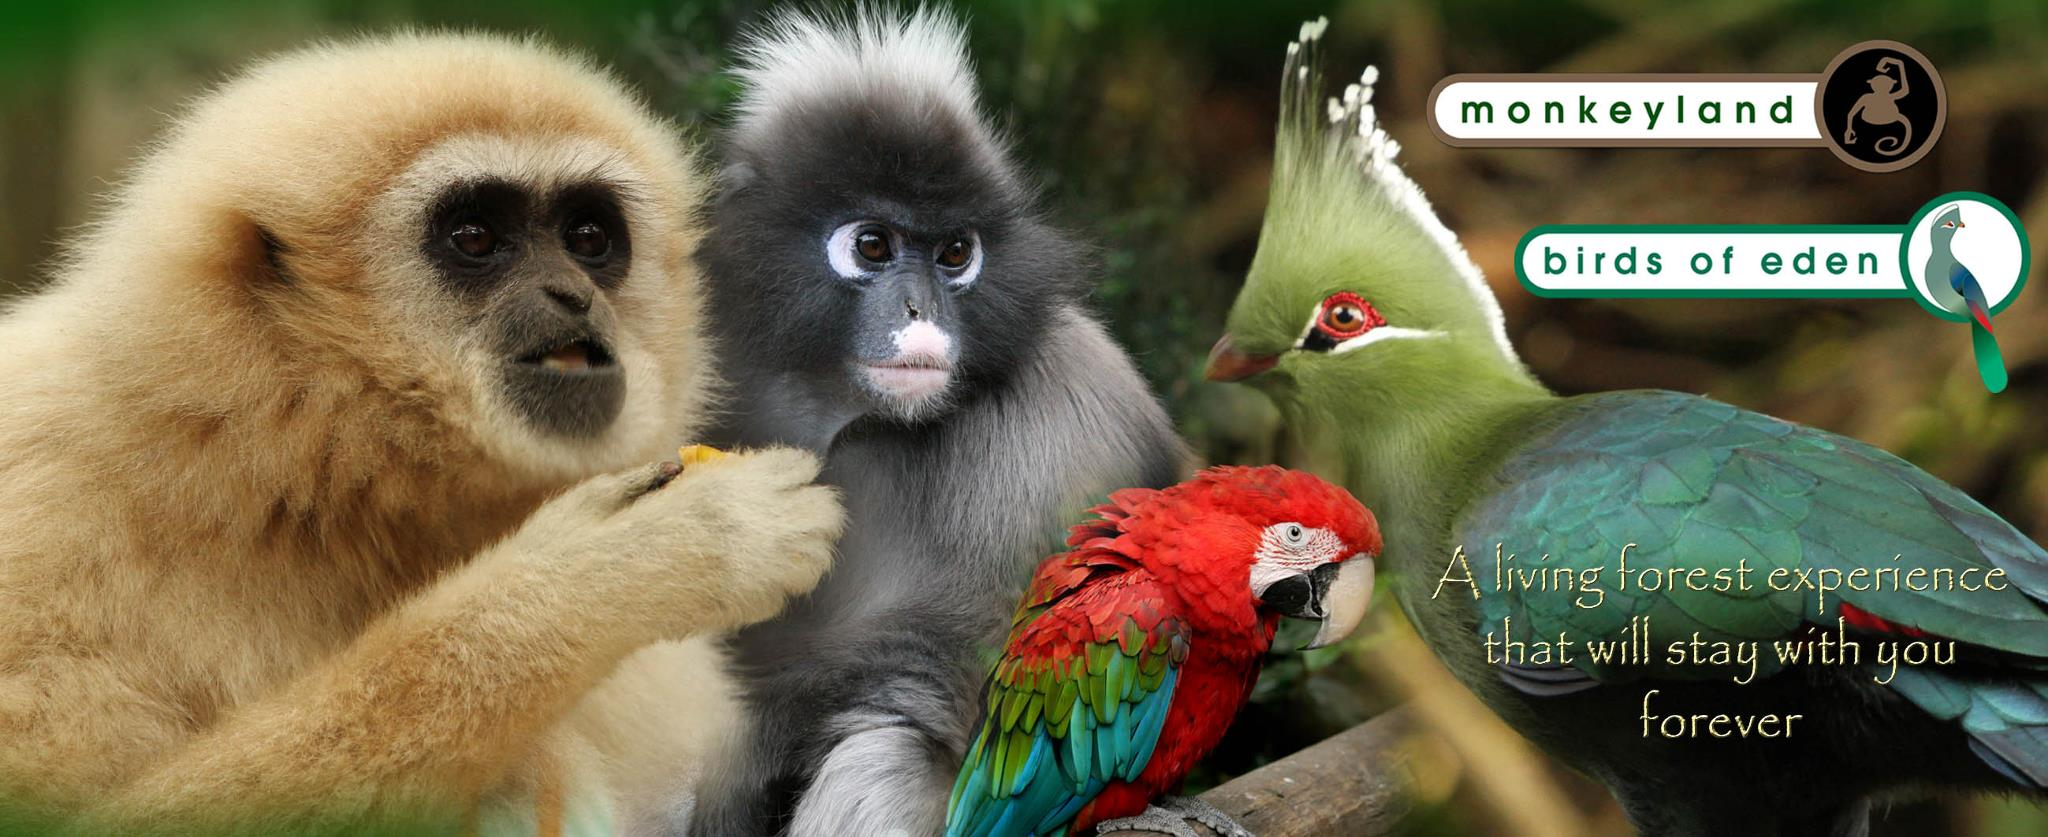 Monkeyland Birds of Eden - 7 Day Garden Route Tour